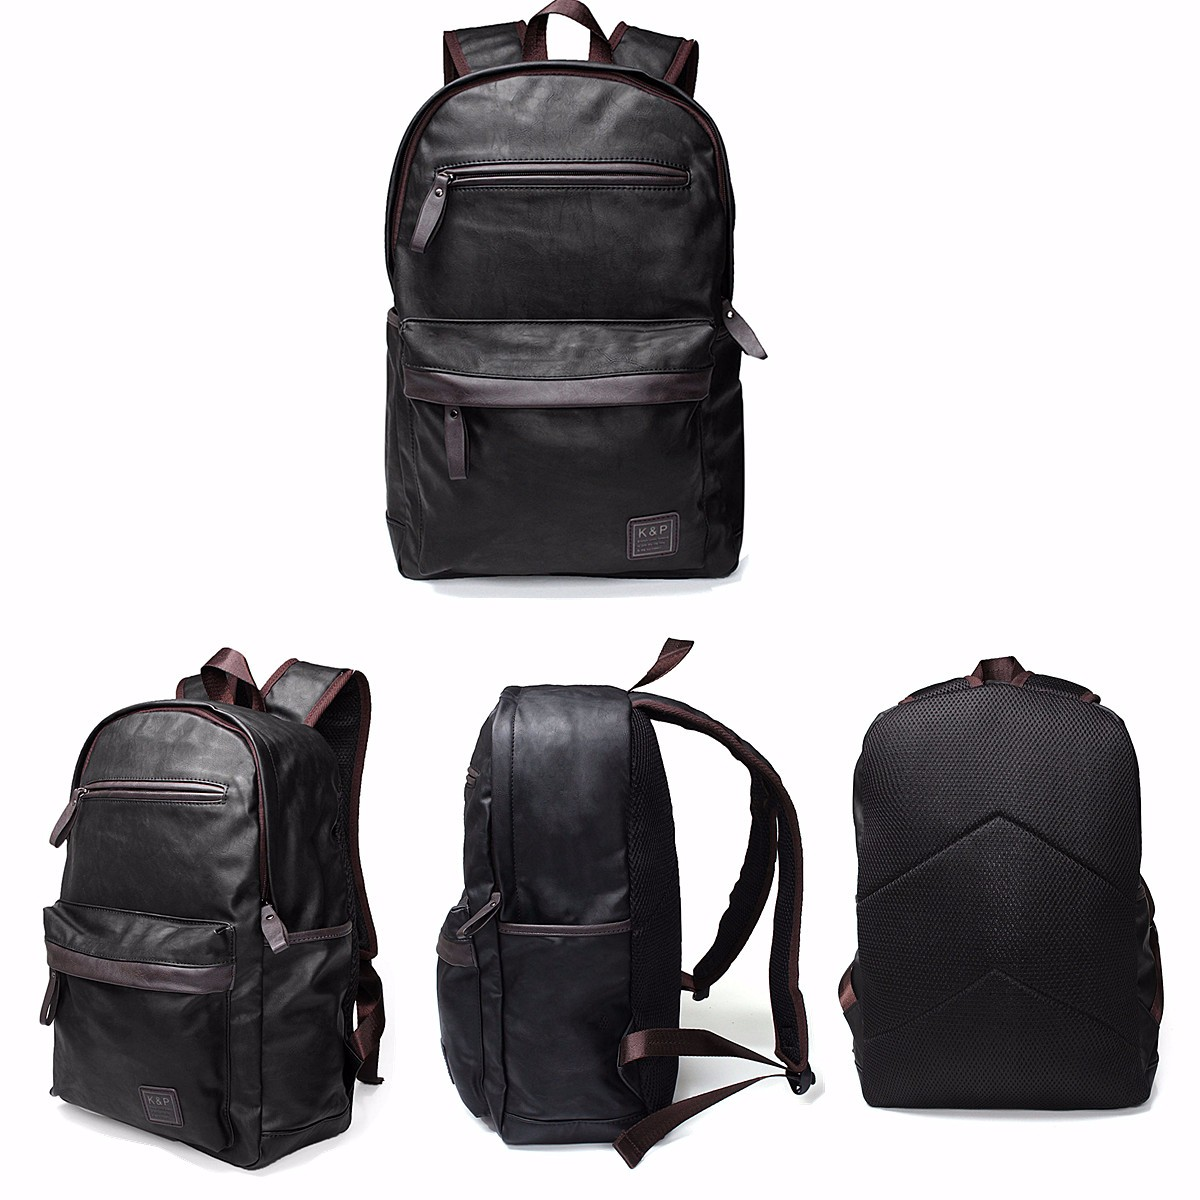 Mens Leather Laptop Hiking Backpack Rucksack Shoulder Travel School Bag